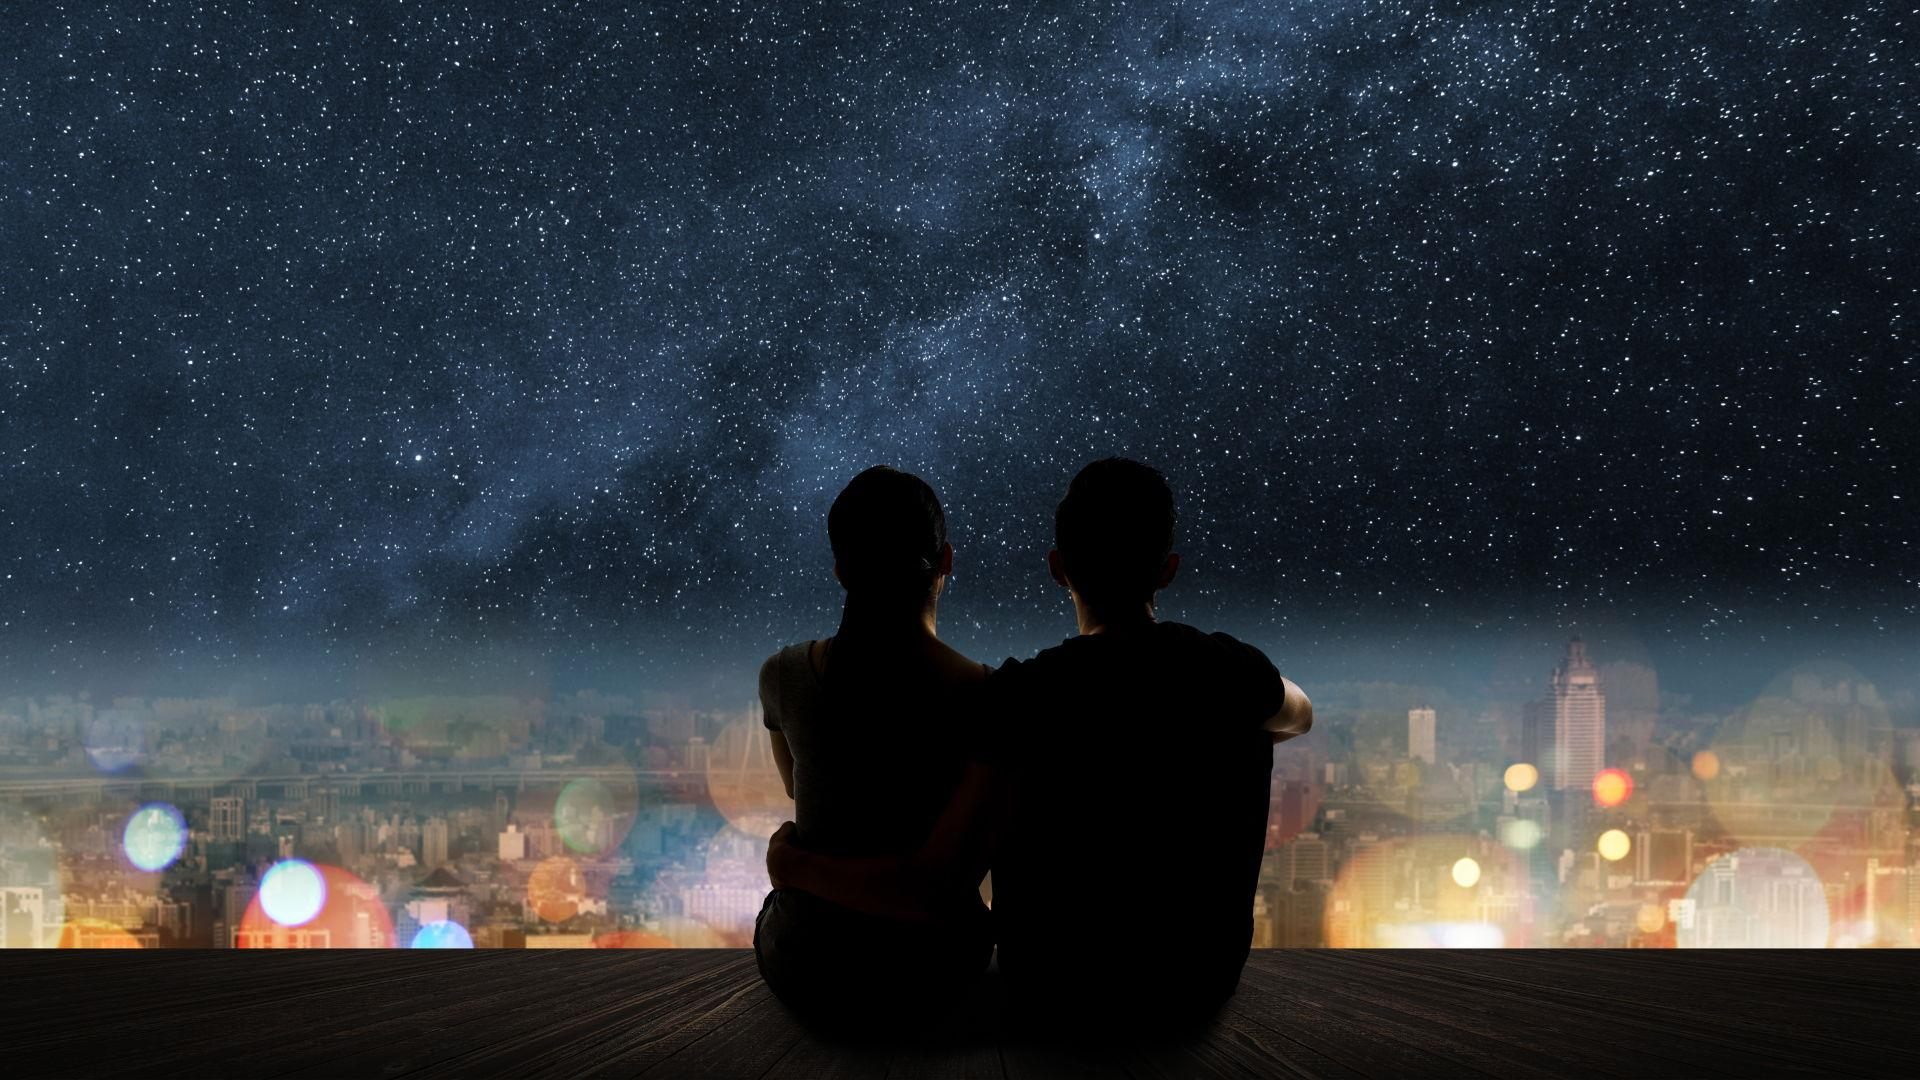 Two People Taking Time Out To Appreciate The View